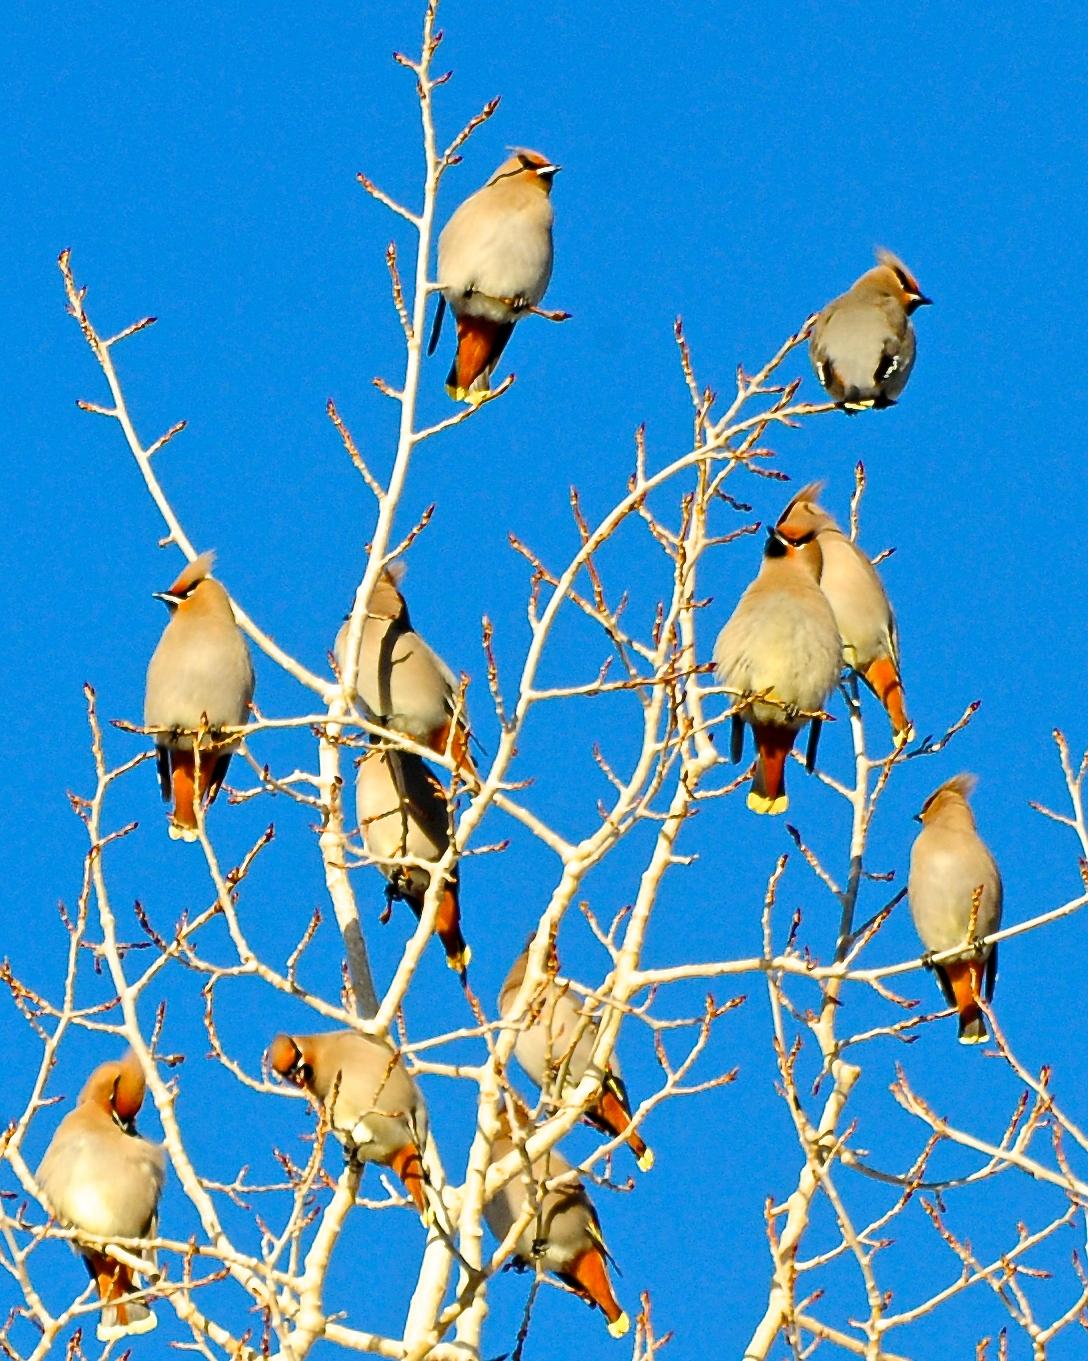 Bohemian Waxwing Photo by Gerald Friesen